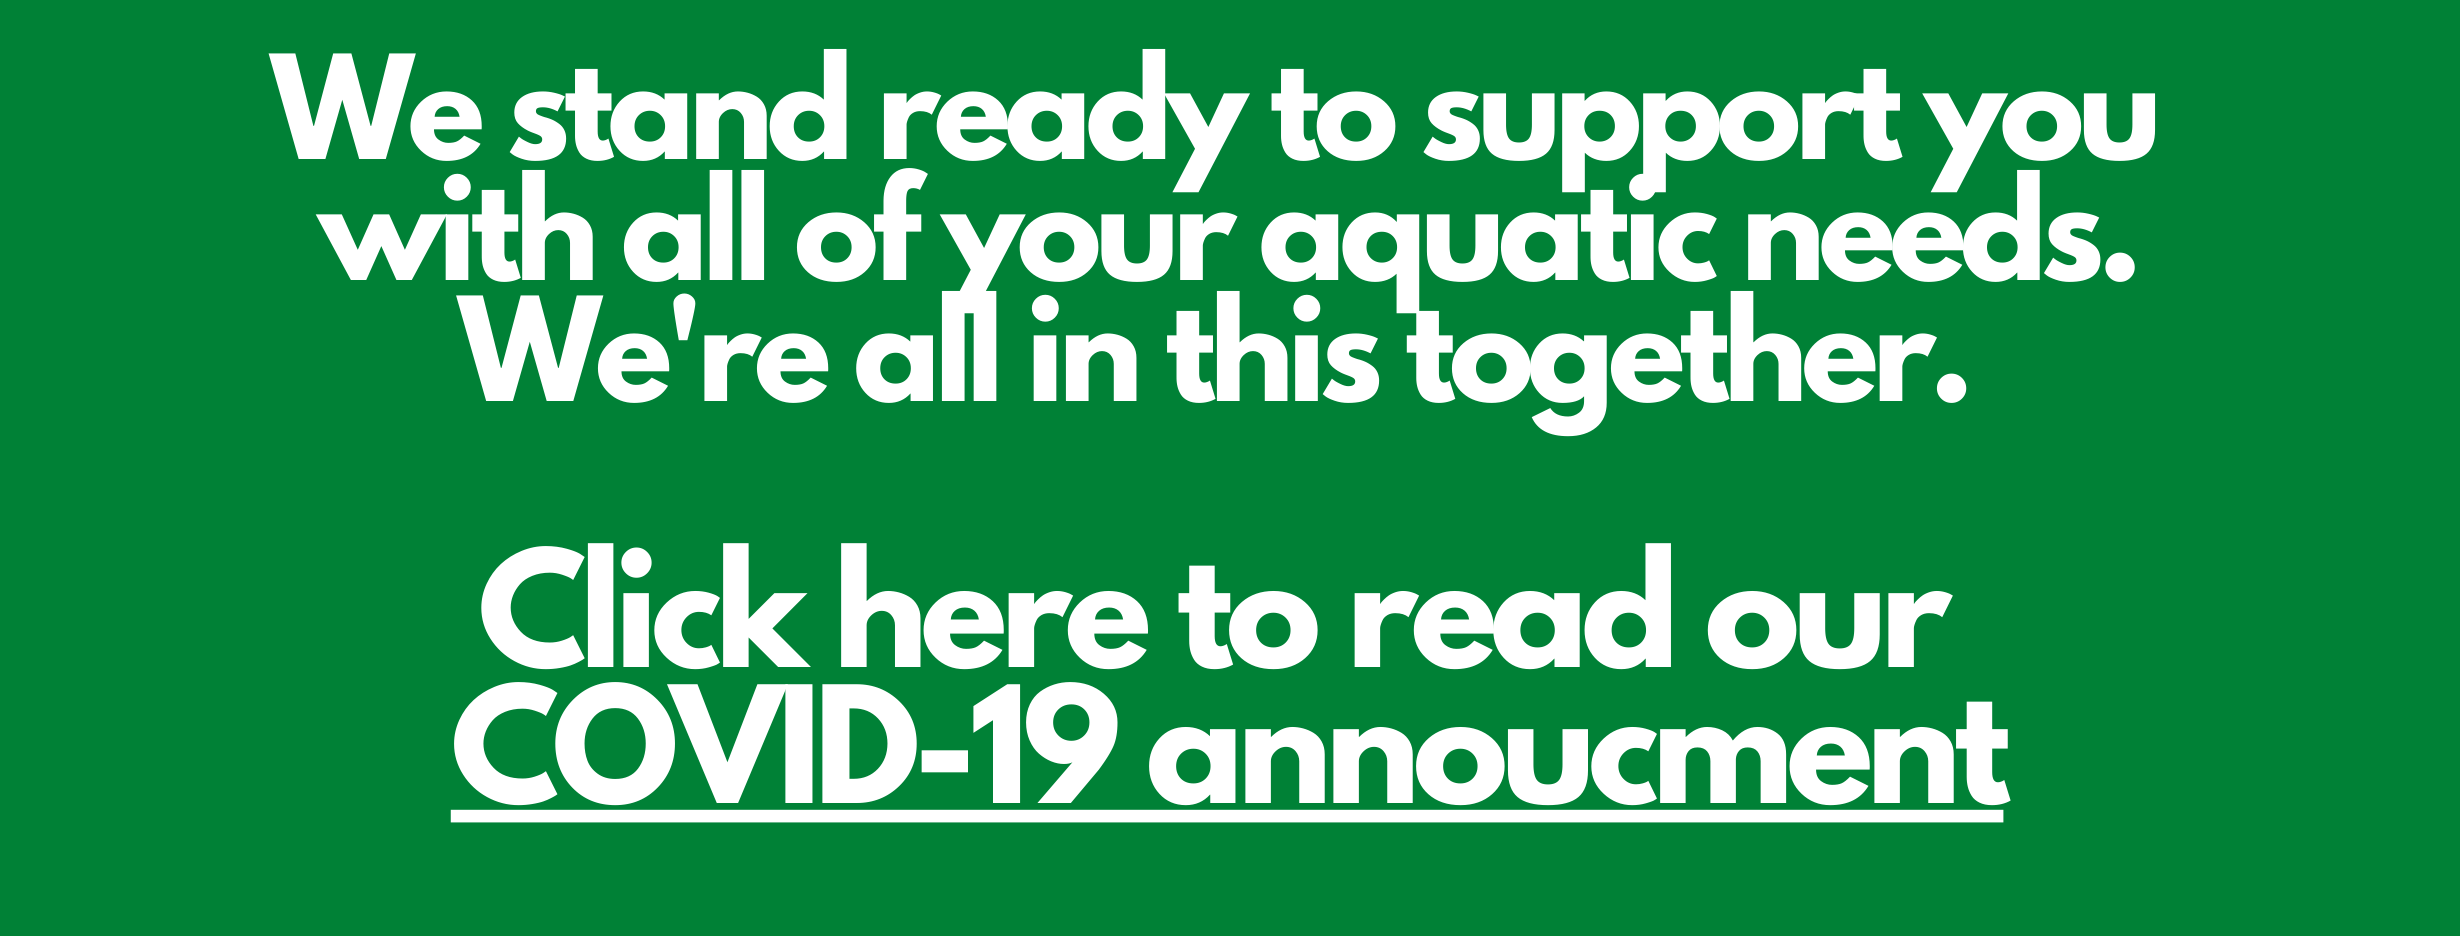 We stand ready to support you with all of your aquatic needs. We're all in this together. Click here to read our COVID-19 annoucment